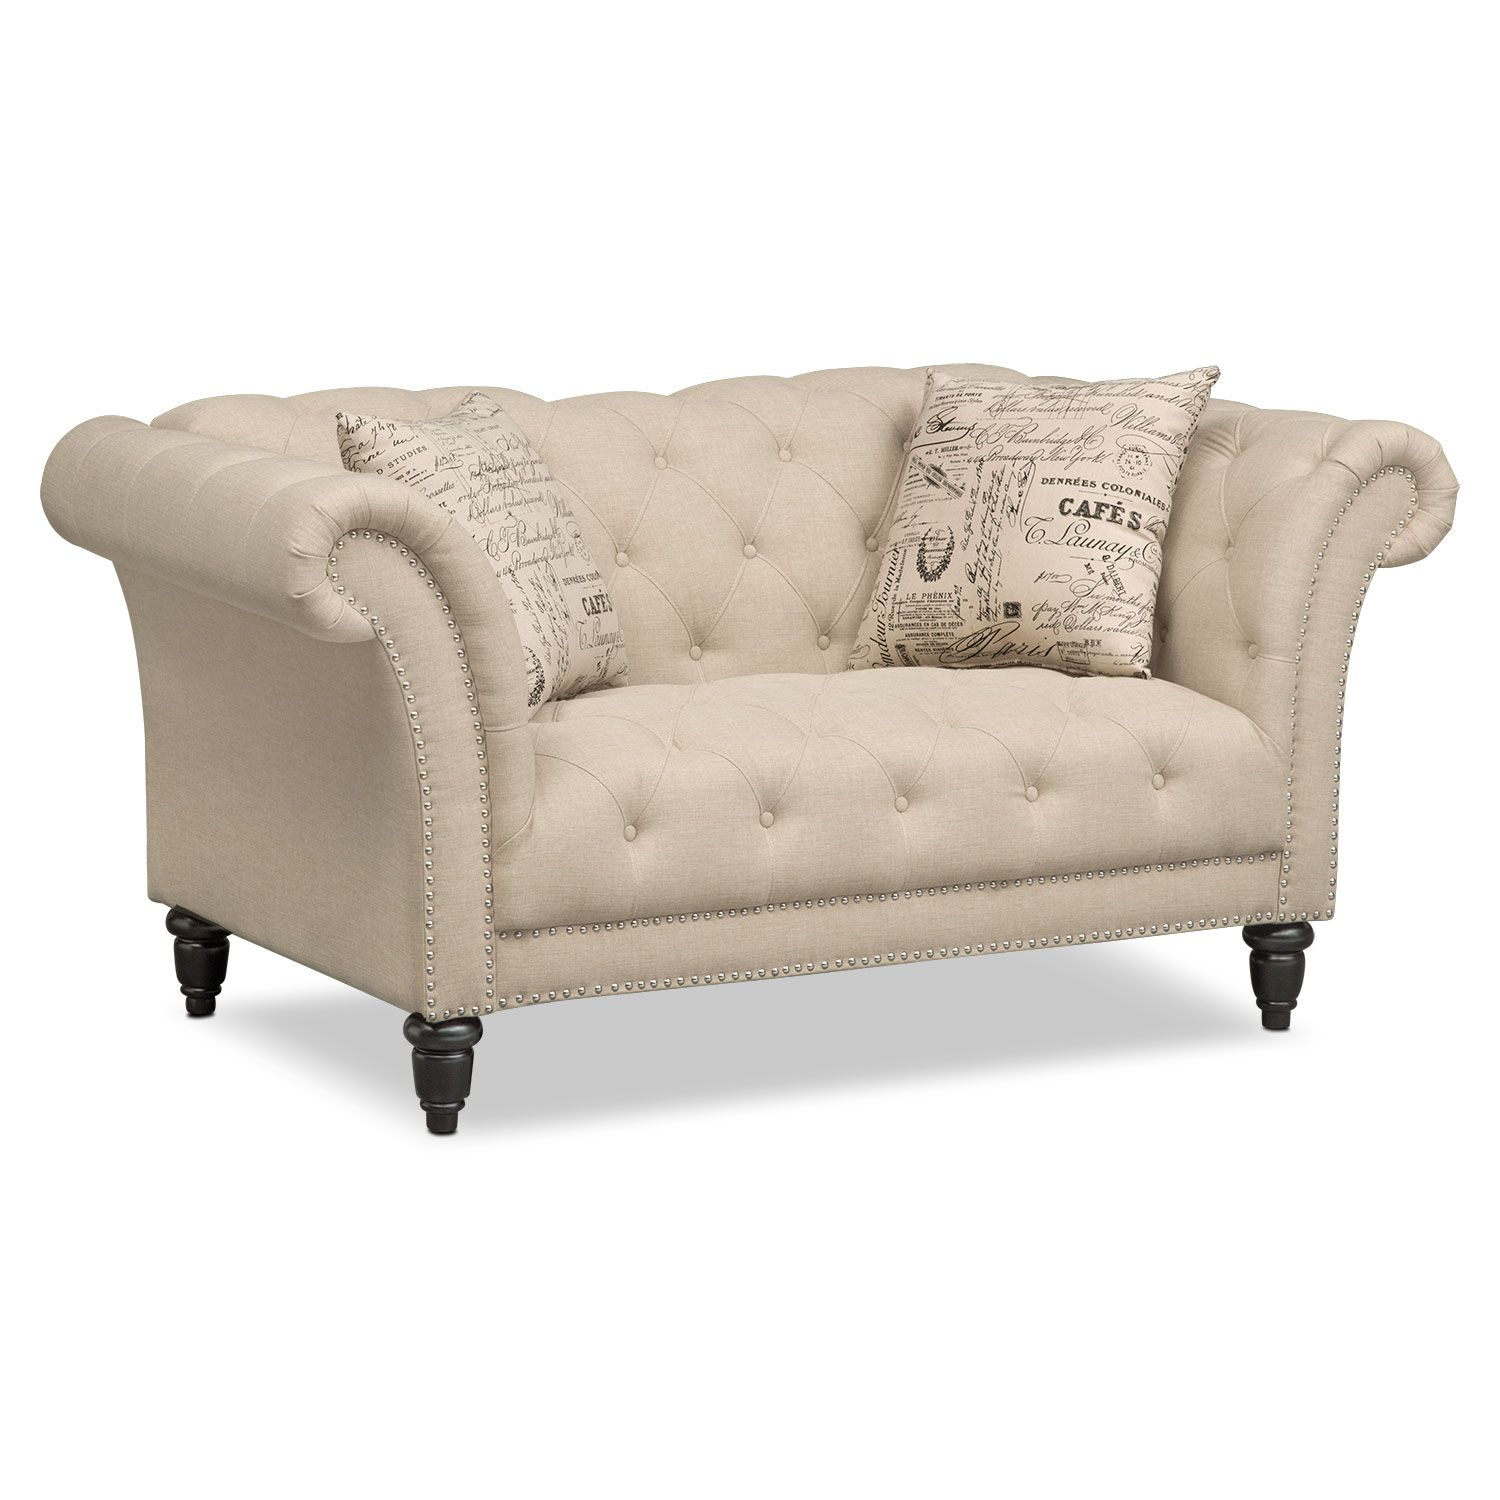 Living Room Loveseats Living Room Furniture Marisol Loveseat Beige The Classics